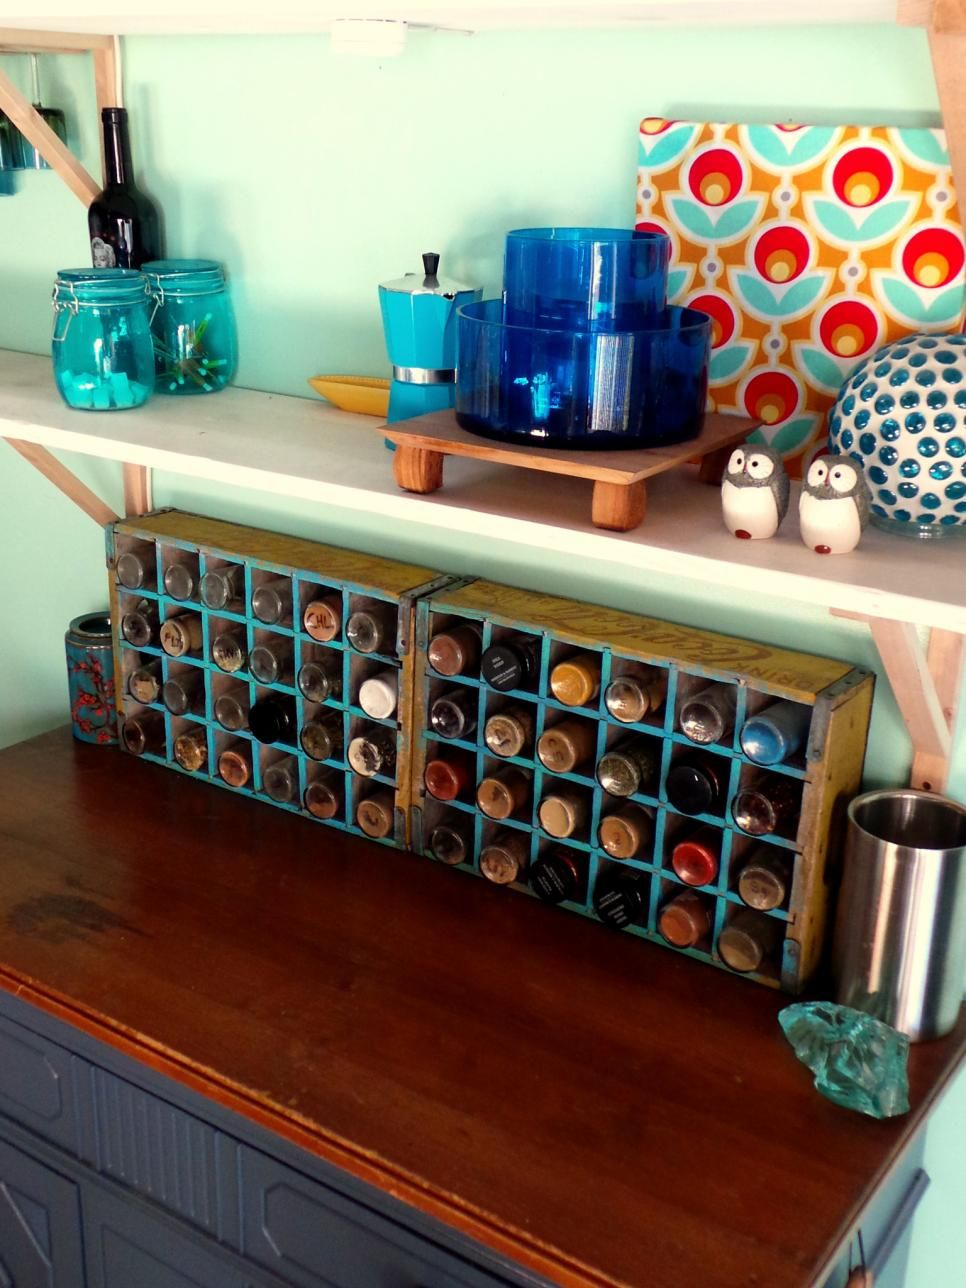 Keep your spices organized and easily accessible with these clever spice storage solutions from HGTV.com from DIY and upcycled creations to tried-and-true ... & 15 Creative Spice Storage Ideas | Pinterest | Clever Organizing and ...